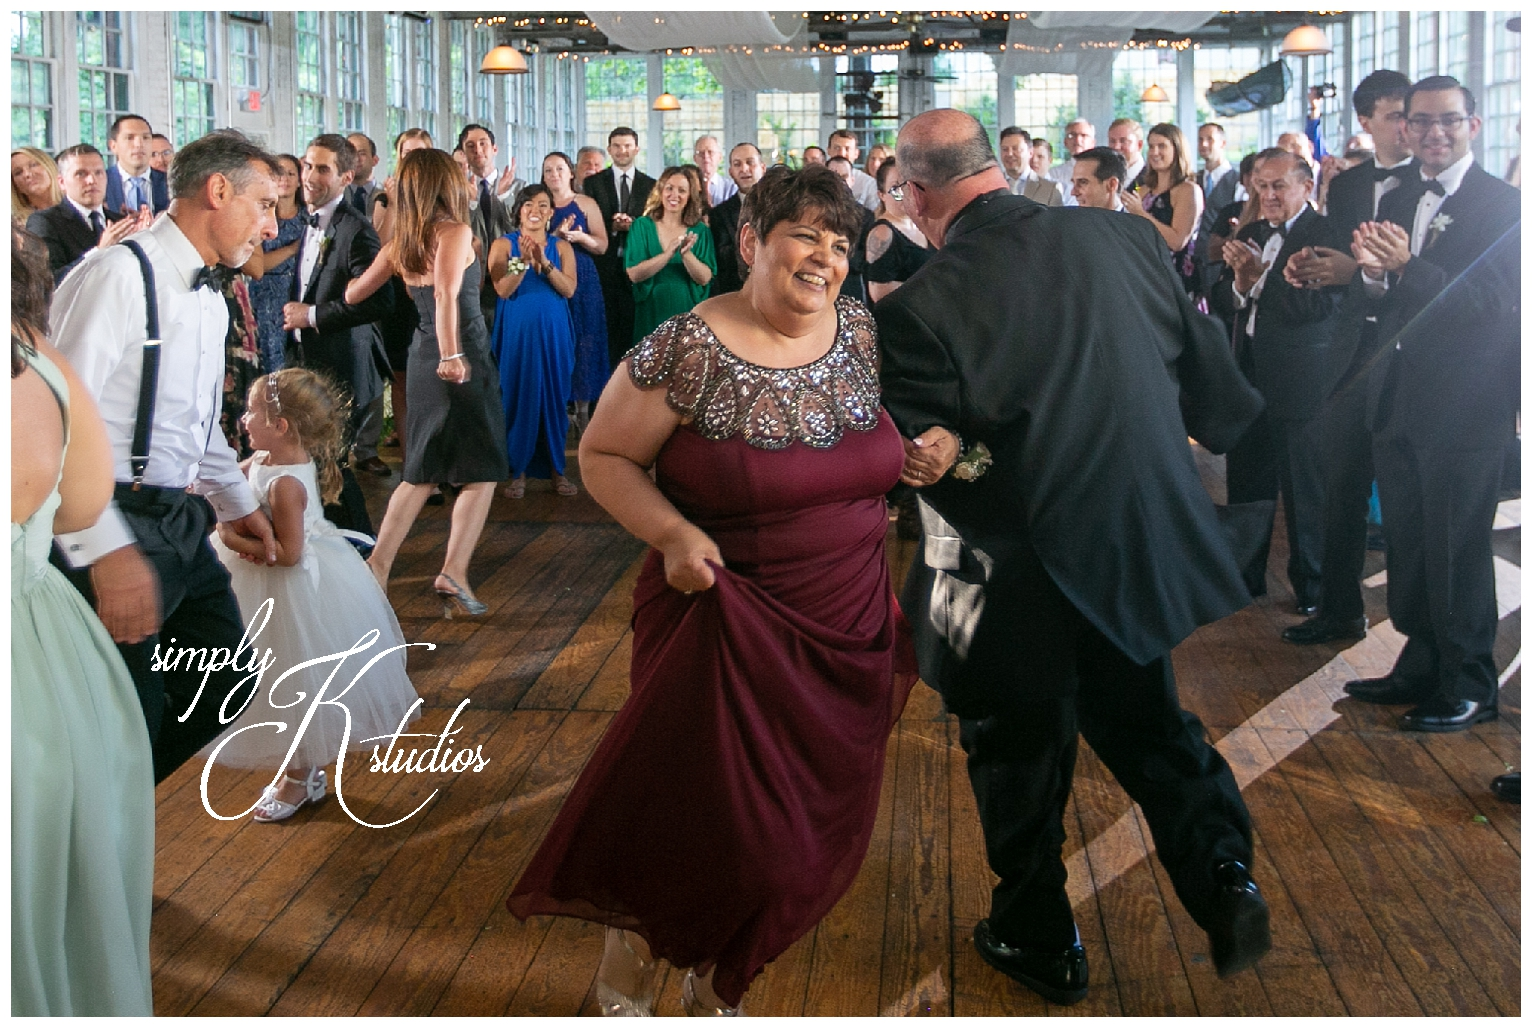 Dancing at The Lace Factory Wedding.jpg